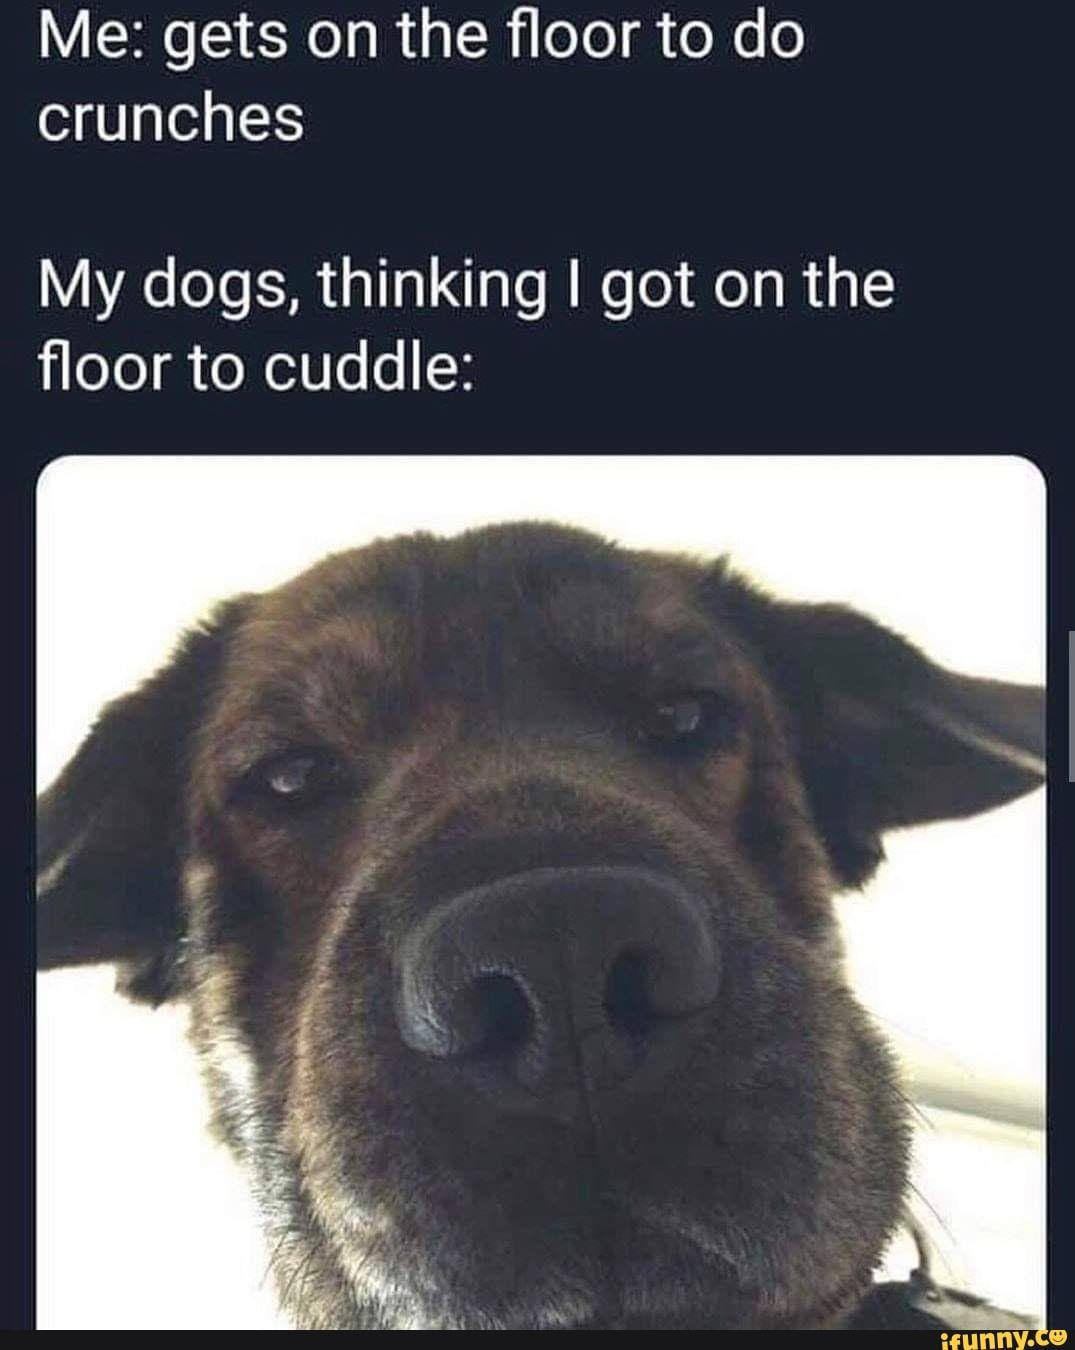 Pet Memes Clean : memes, clean, floor, Crunches, Dogs,, Thinking, Floor, Cuddle:, IFunny, Memes, Clean,, Worlds, Funniest, Memes,, Funny